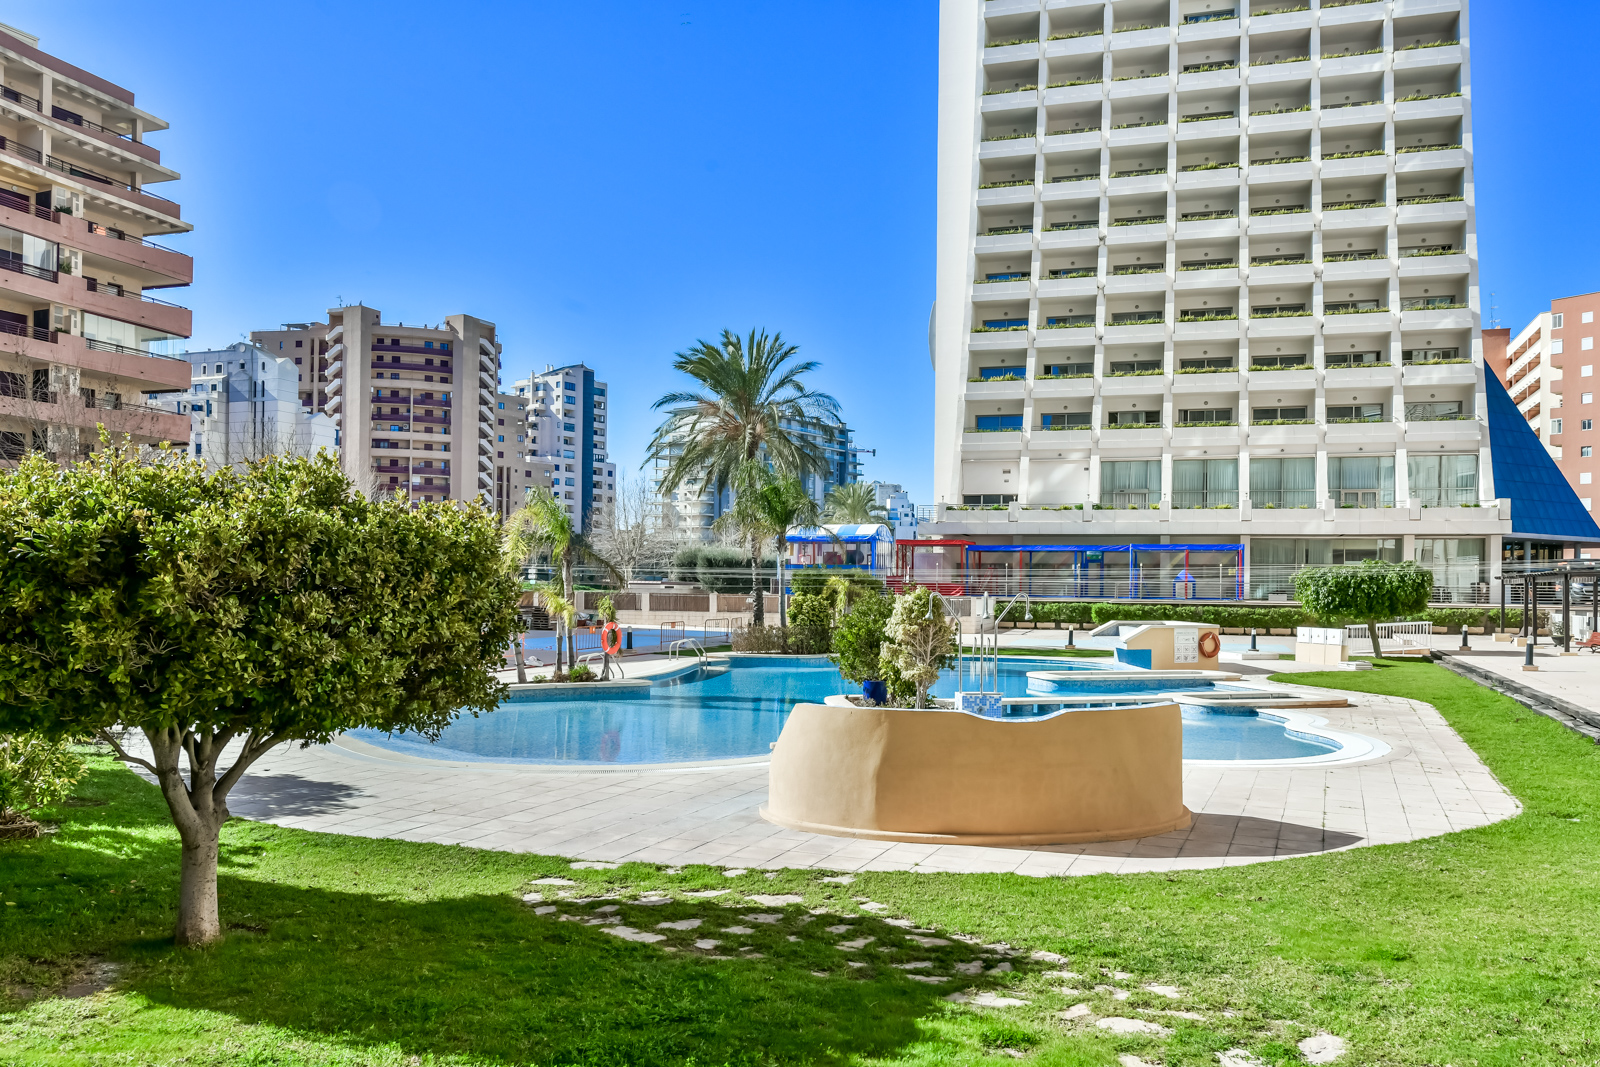 Apartamento Apolo XVI 2 4 19, Apartment  with communal pool in Calpe, on the Costa Blanca, Spain for 4 persons.....